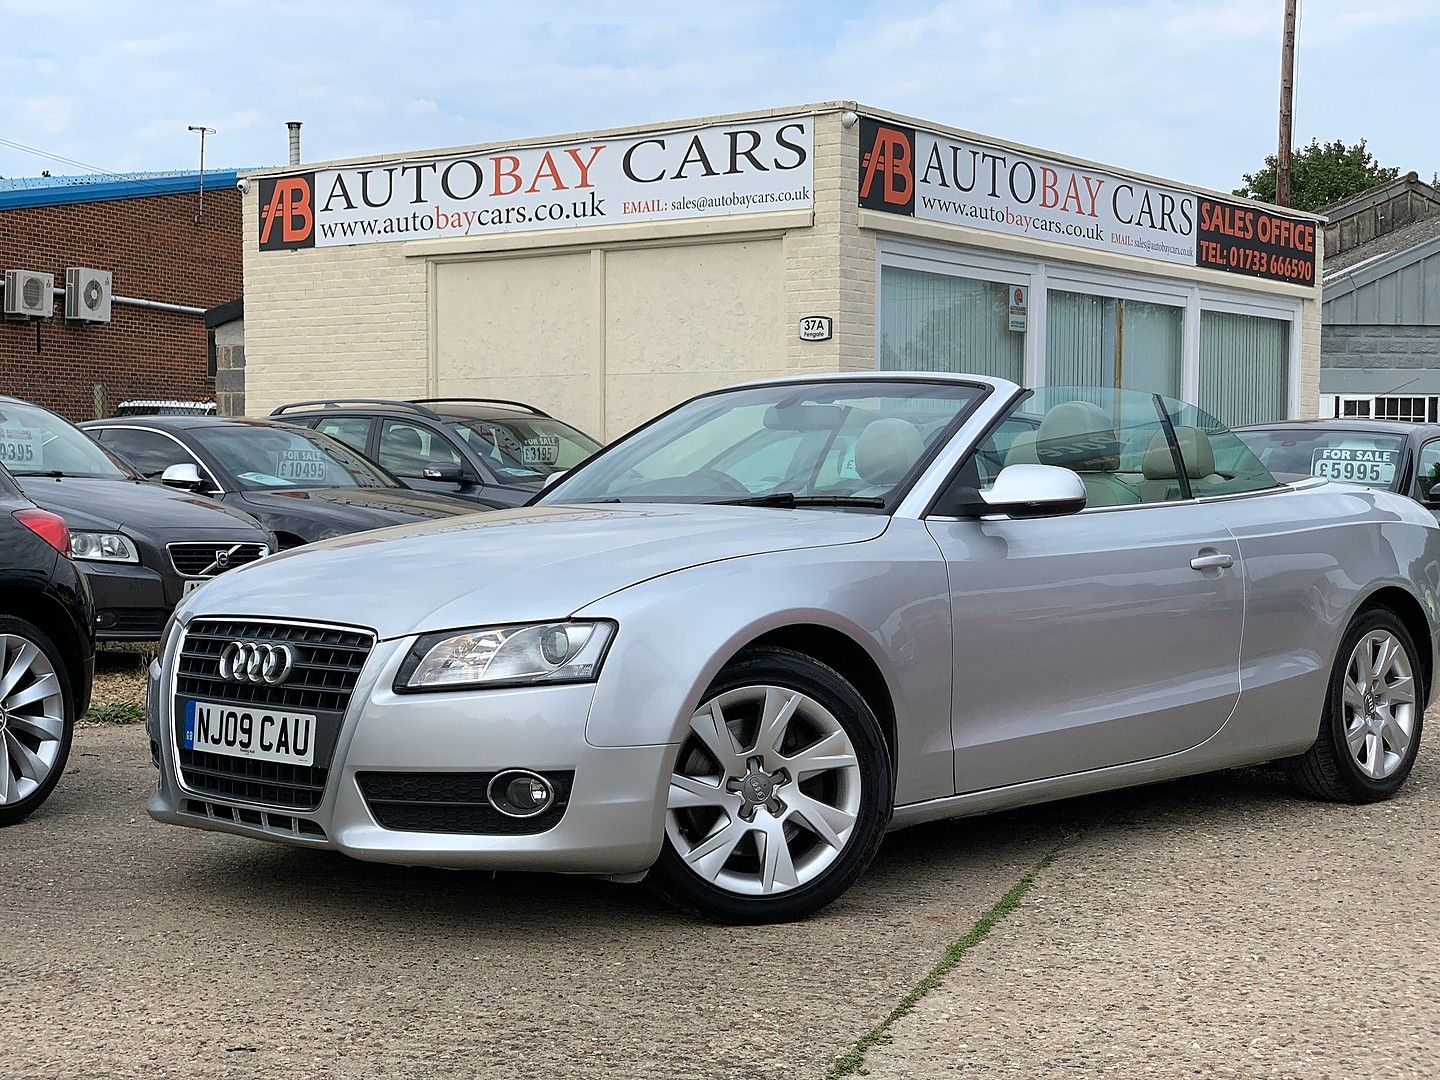 AUDIA52.0 TFSI 211PS SE for sale